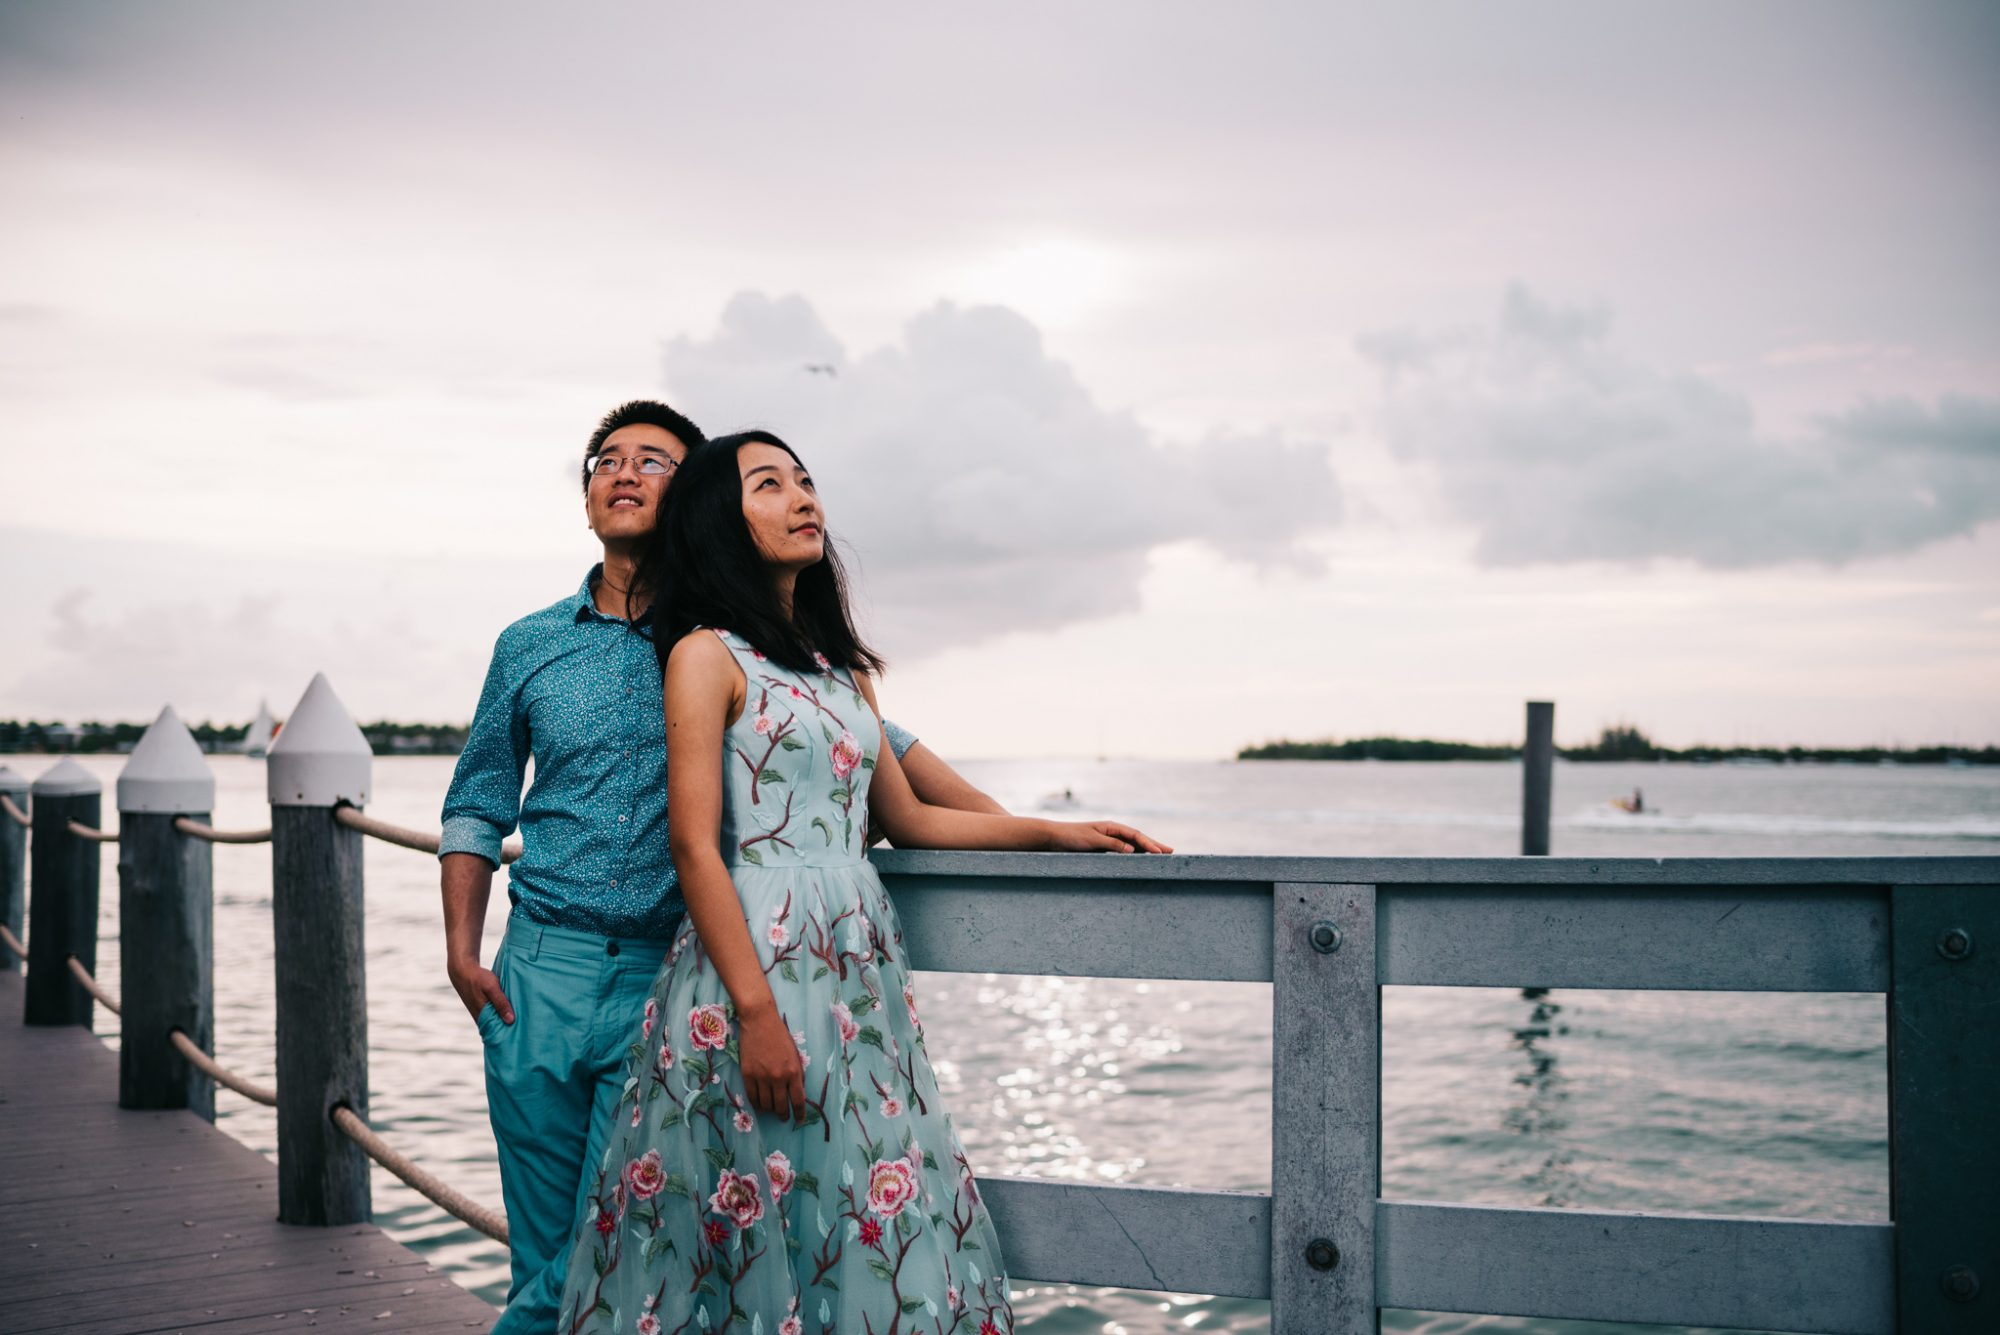 FBF1455 - Xiao & Ying | Key West, FL | Engagement Sunset Session